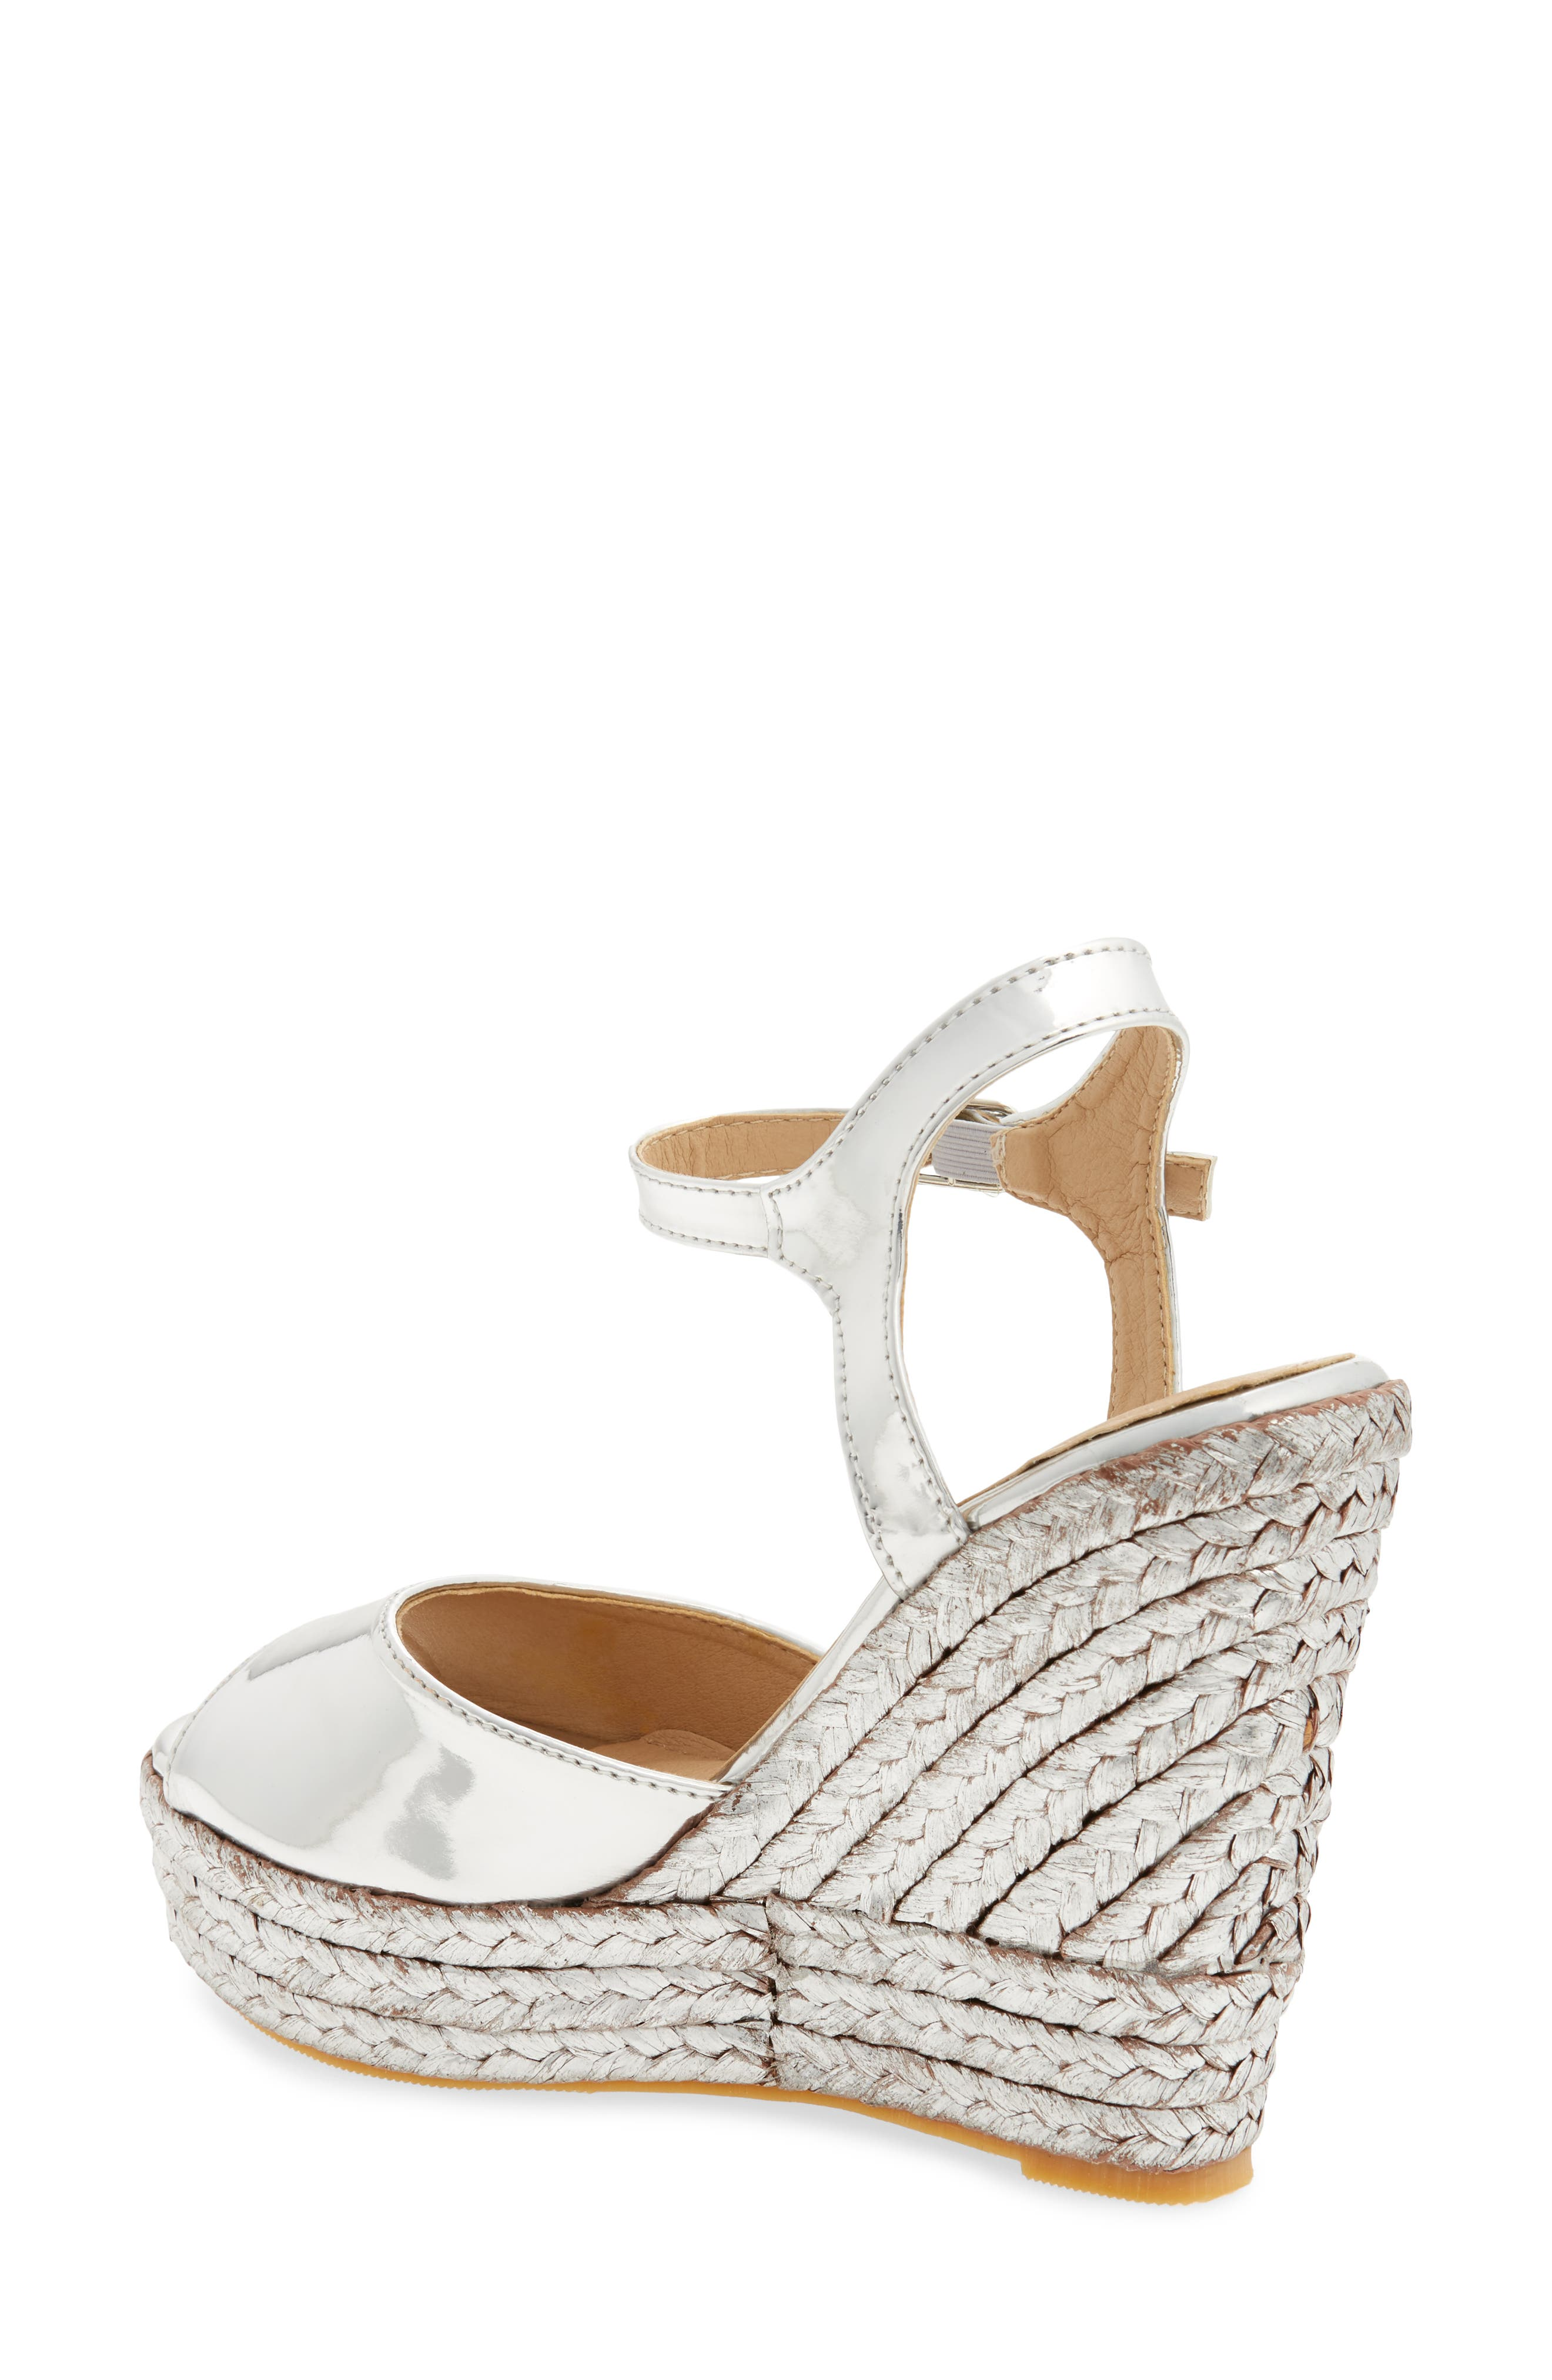 Lina Platform Wedge Sandal,                             Alternate thumbnail 2, color,                             SILVER